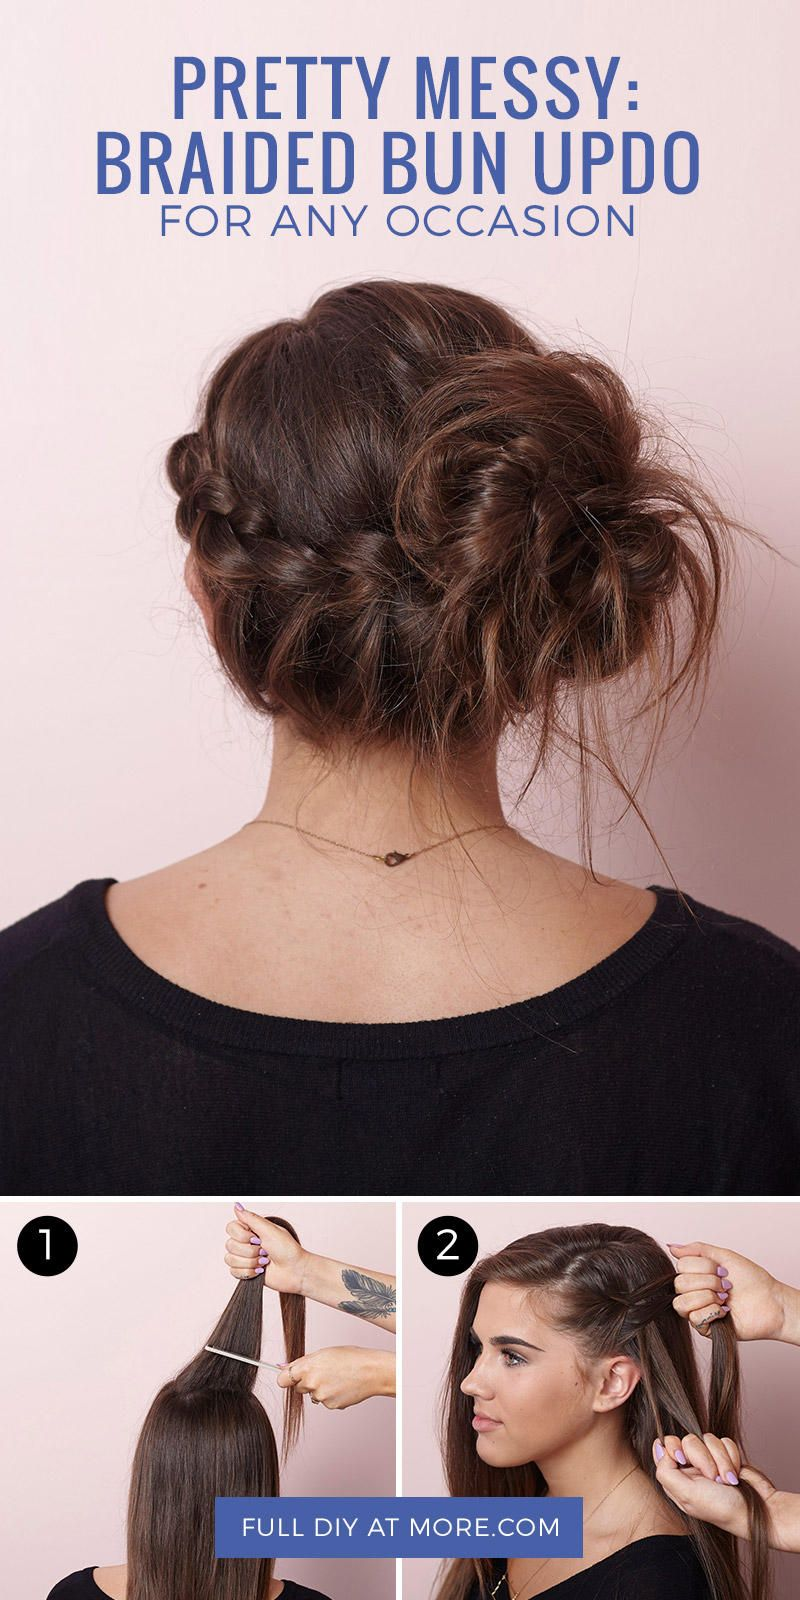 Pretty Messy The Braided Bun Updo For Any Occasion More Messy Bun For Short Hair Messy Hairstyles Hair Tutorial